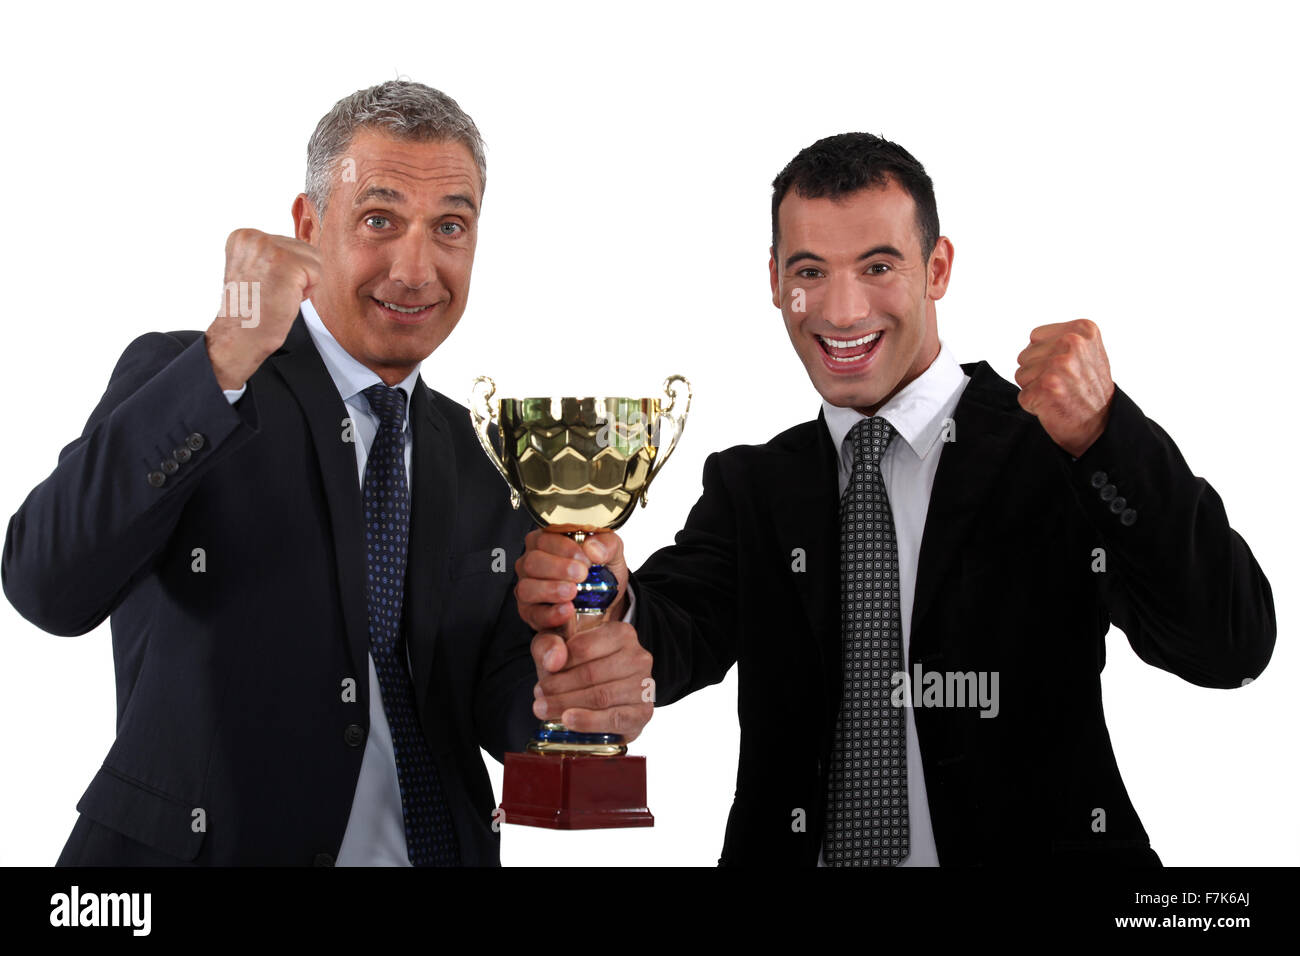 Hommes d'organiser une coupe d'or Photo Stock